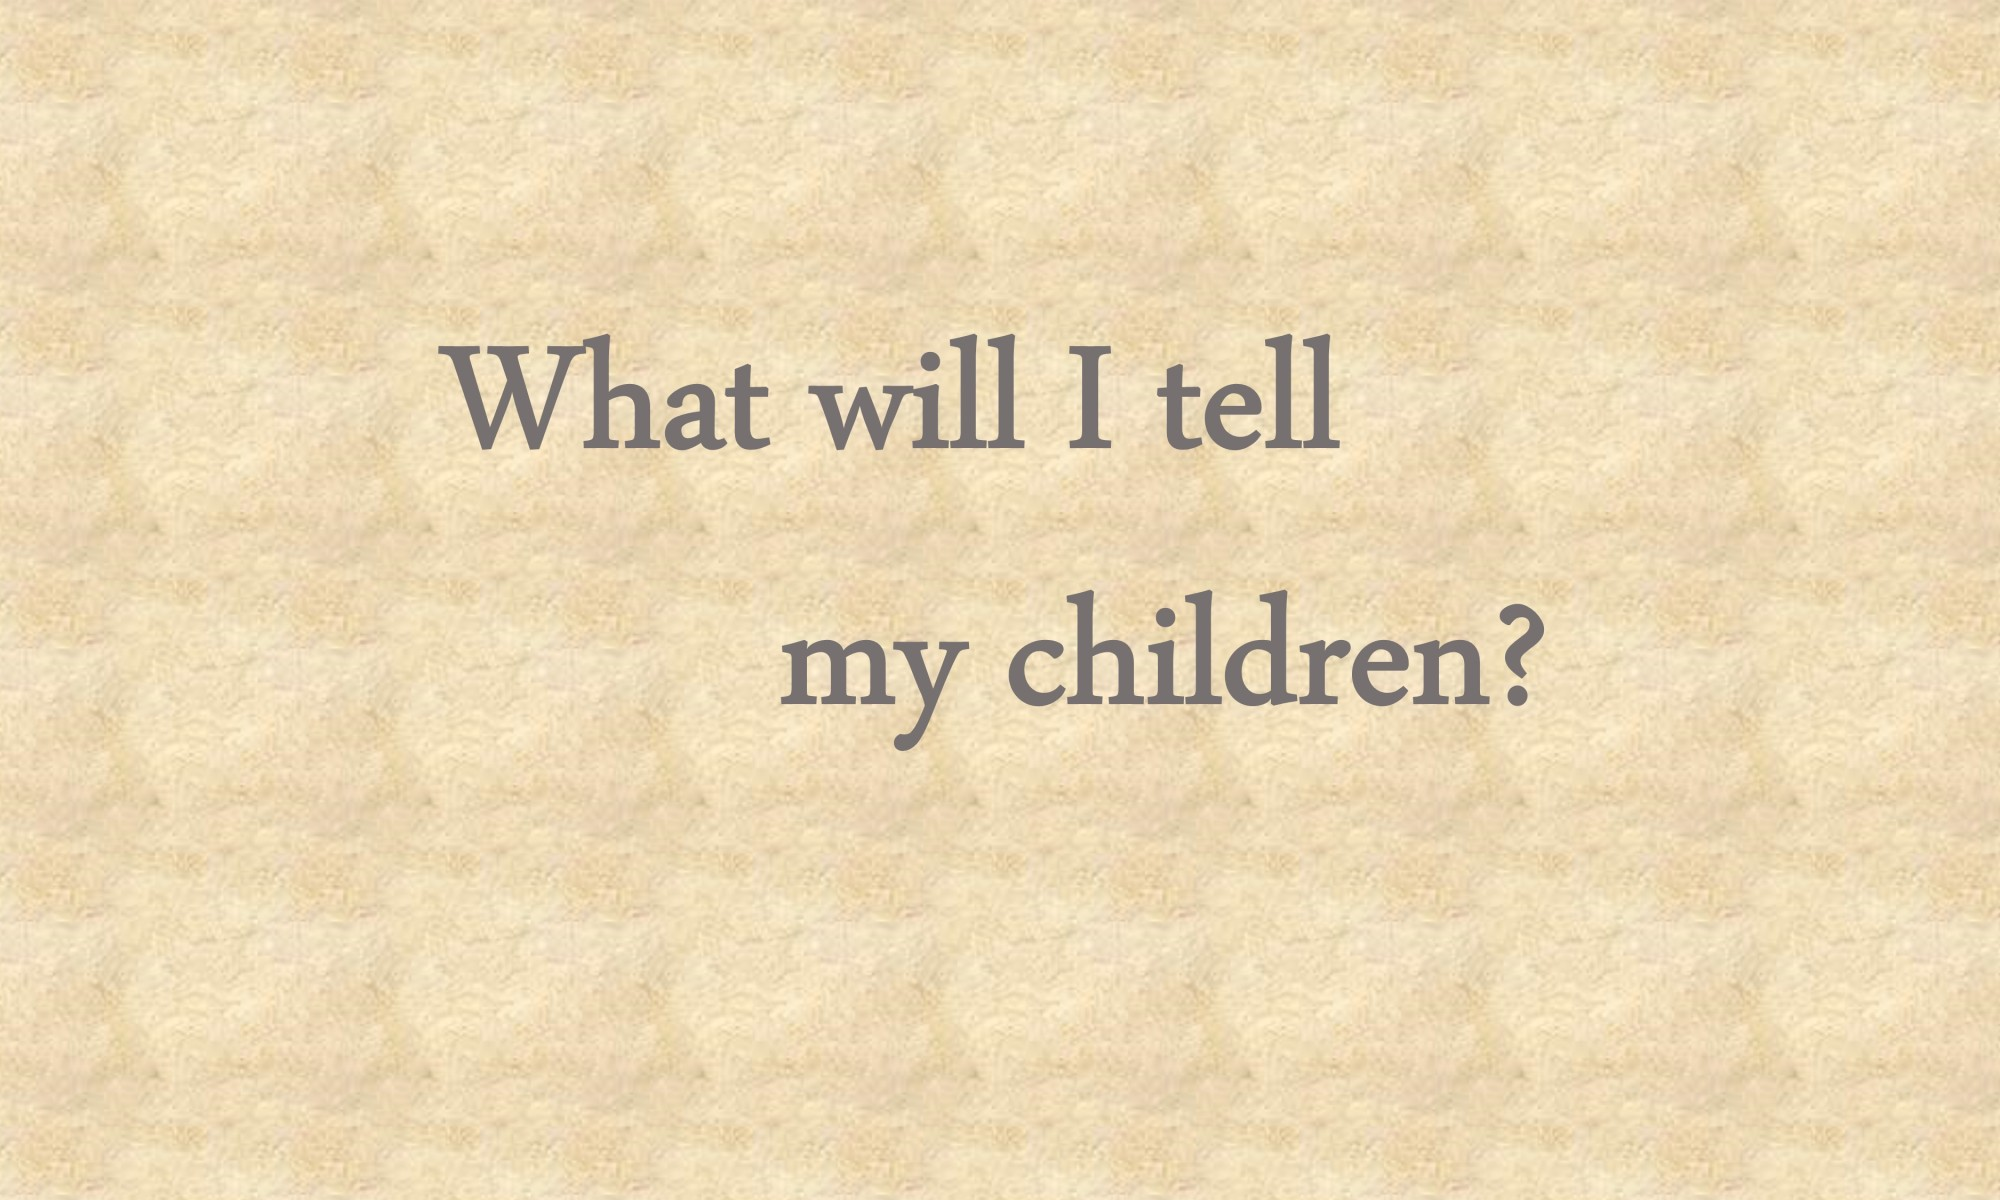 What will I tell my children? title text